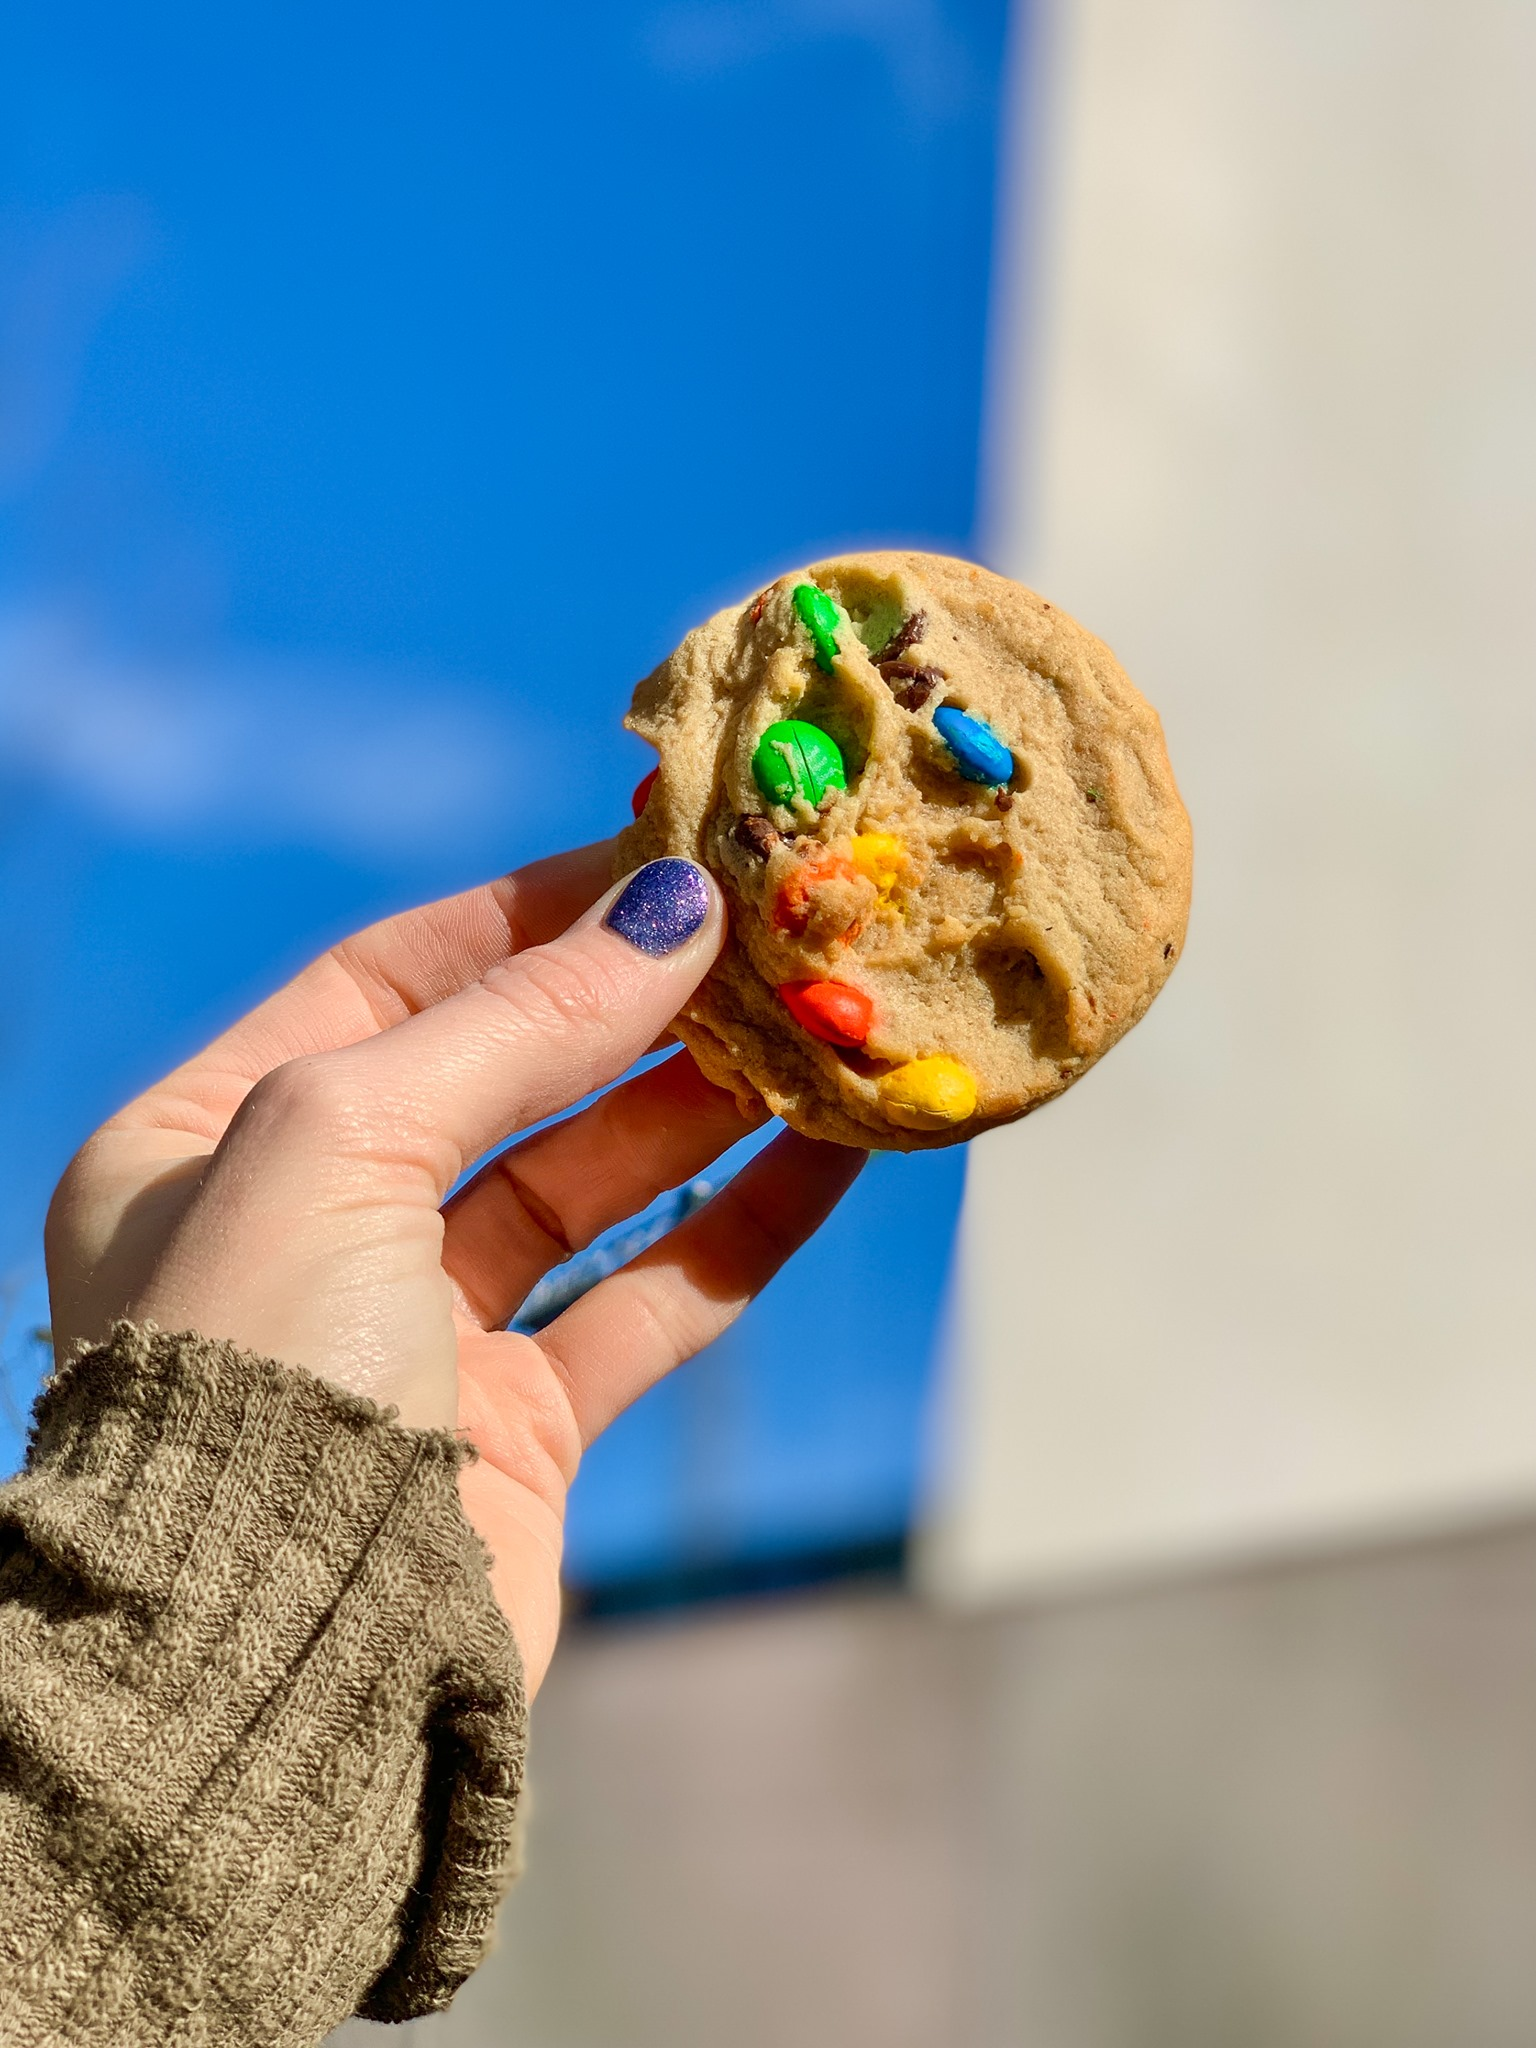 A white woman's hand holds a chocolate candy cookie up in the air